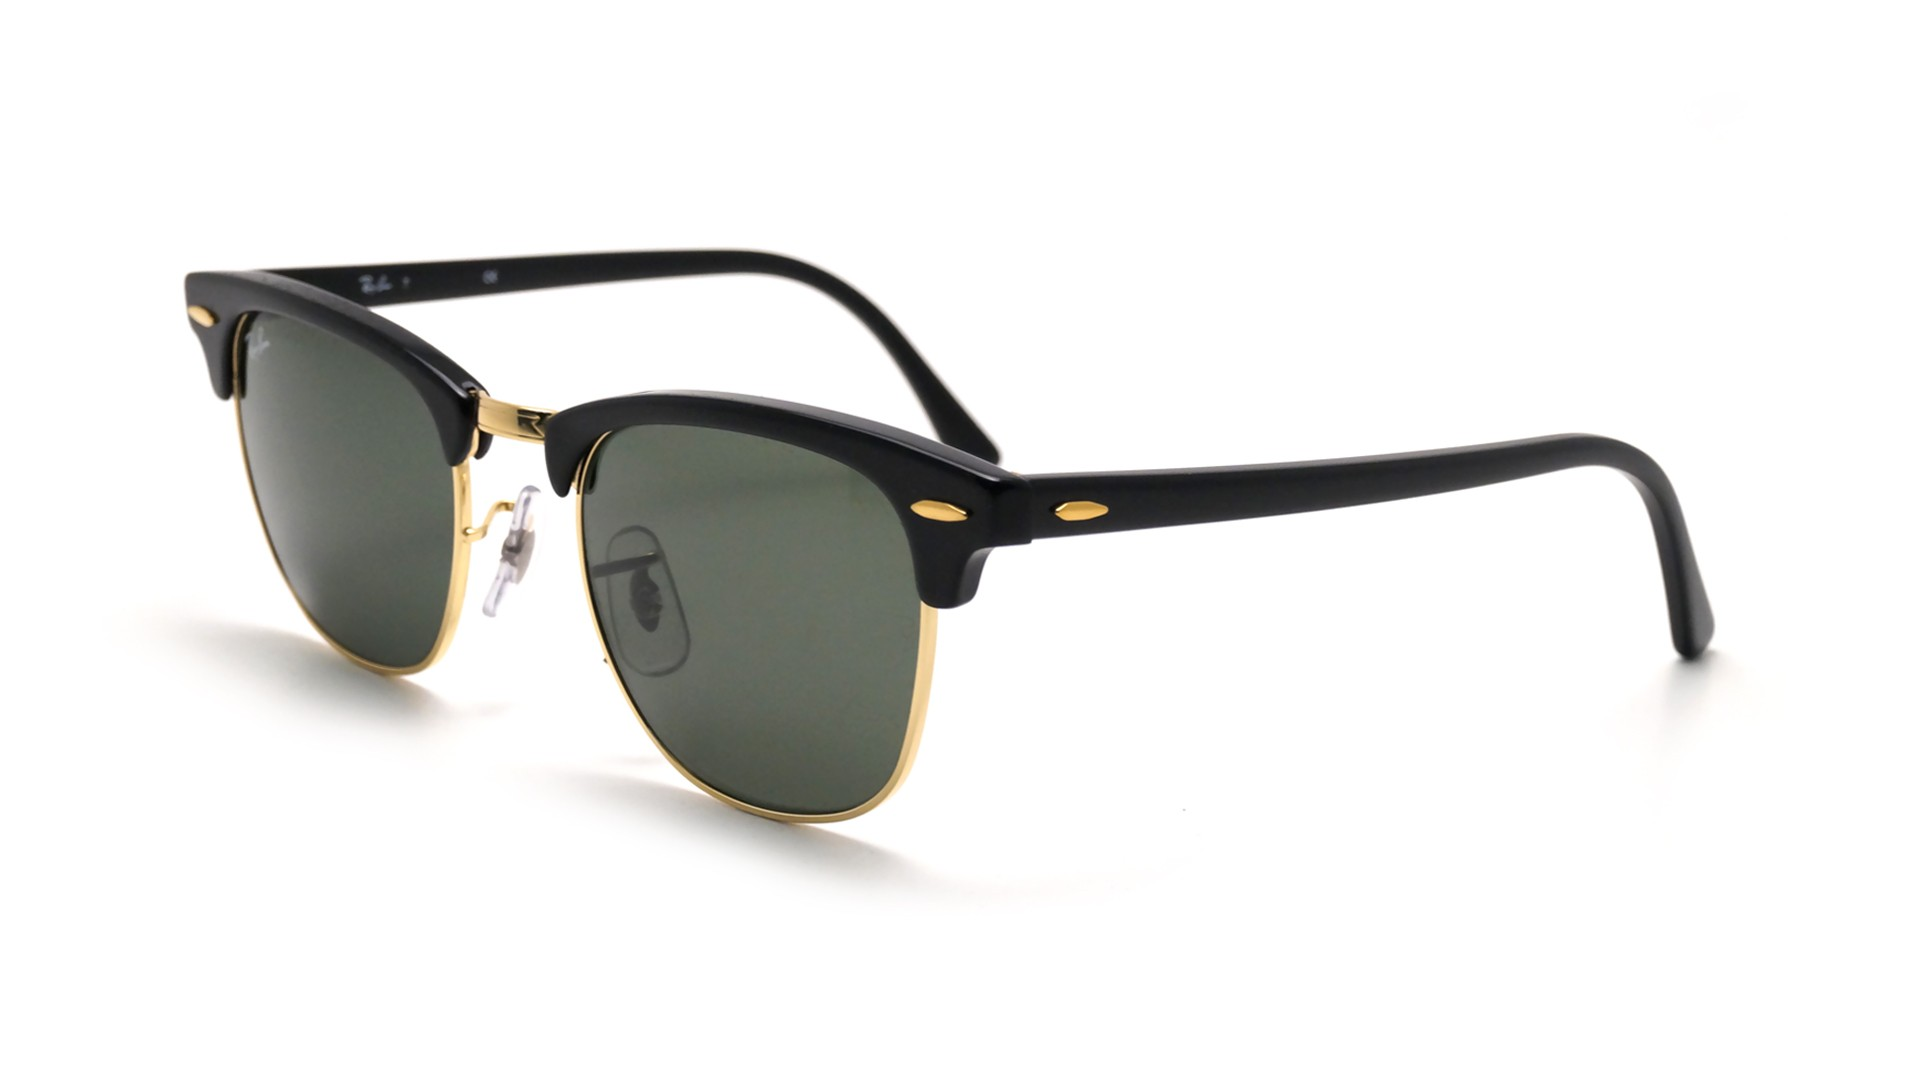 Lunettes de soleil Ray-Ban Clubmaster Classic Noir RB3016 W0365 49-21 Small 99275612e647